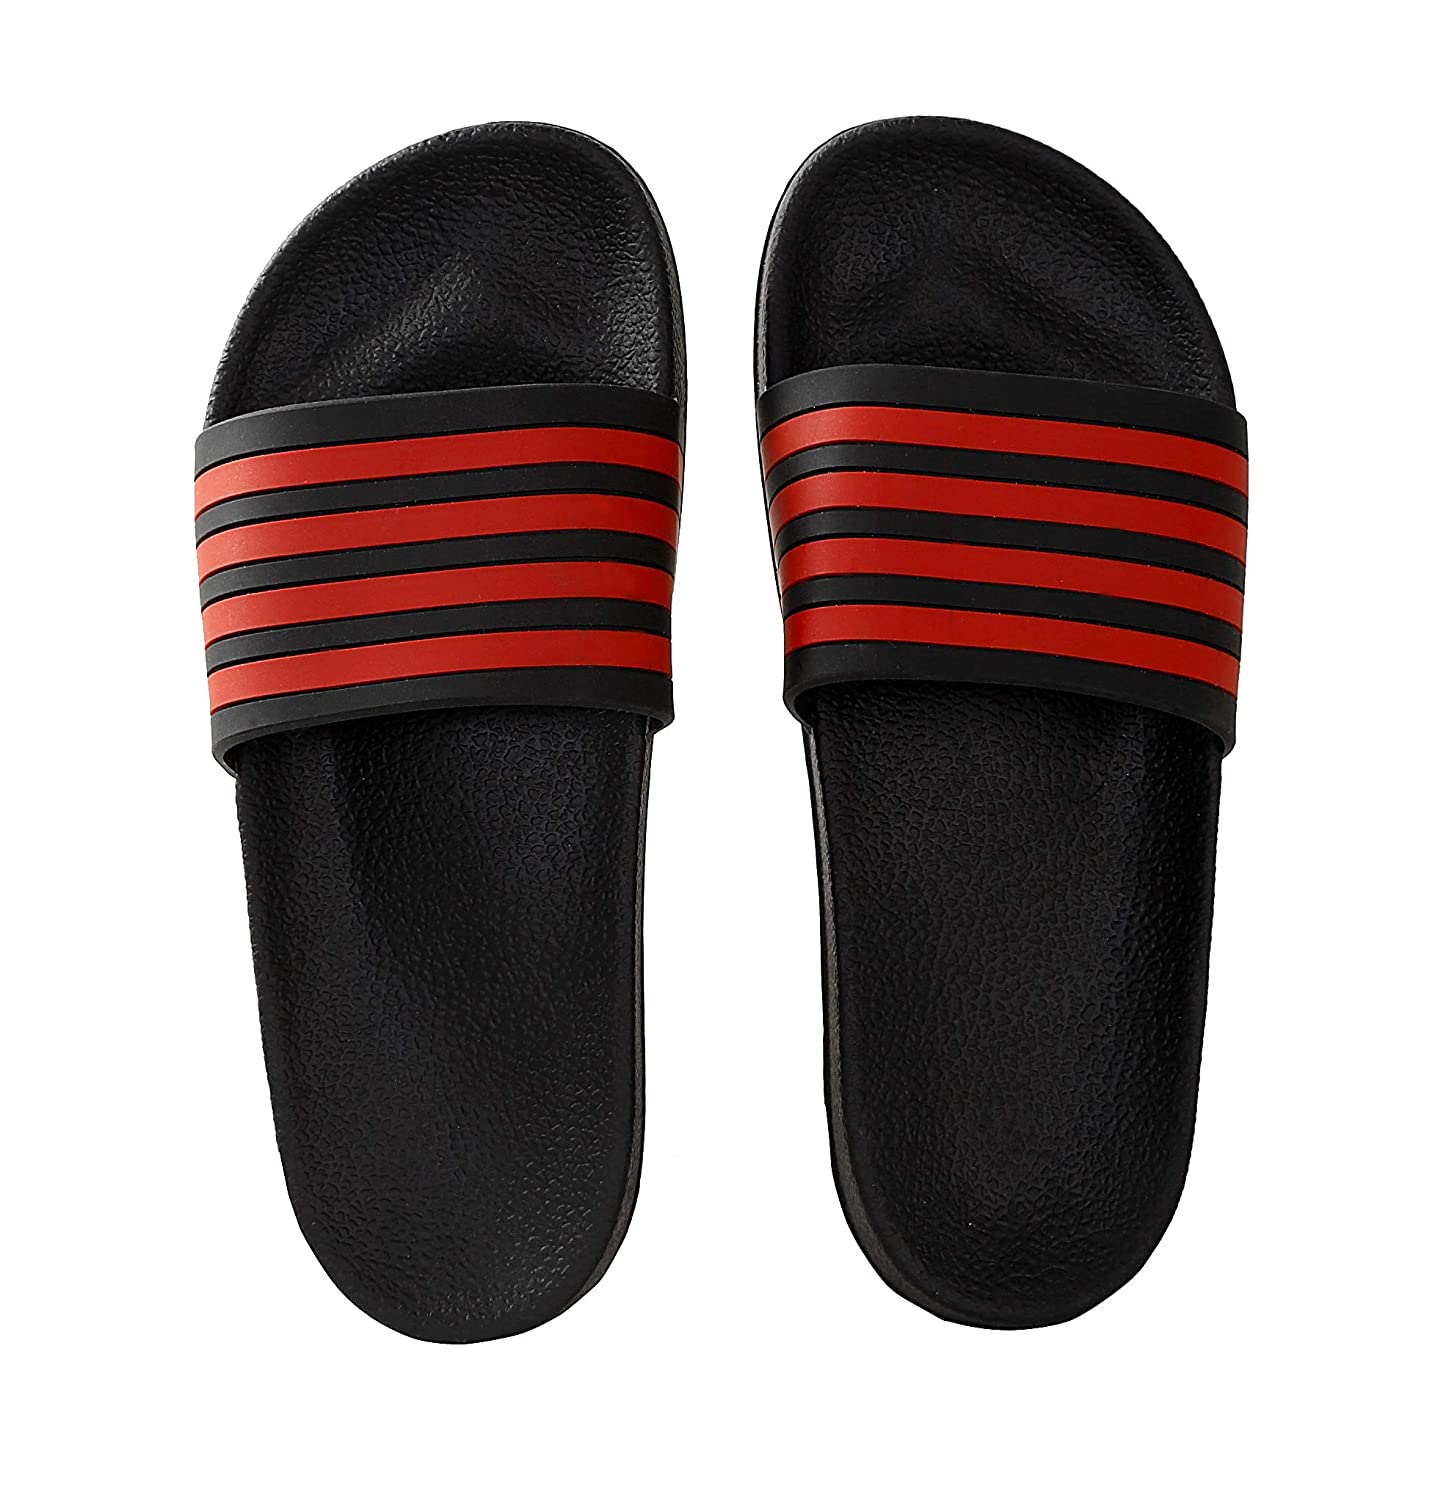 4db7b932 ZAPPY Men Slippers: Buy Online at Low Prices in India - Amazon.in